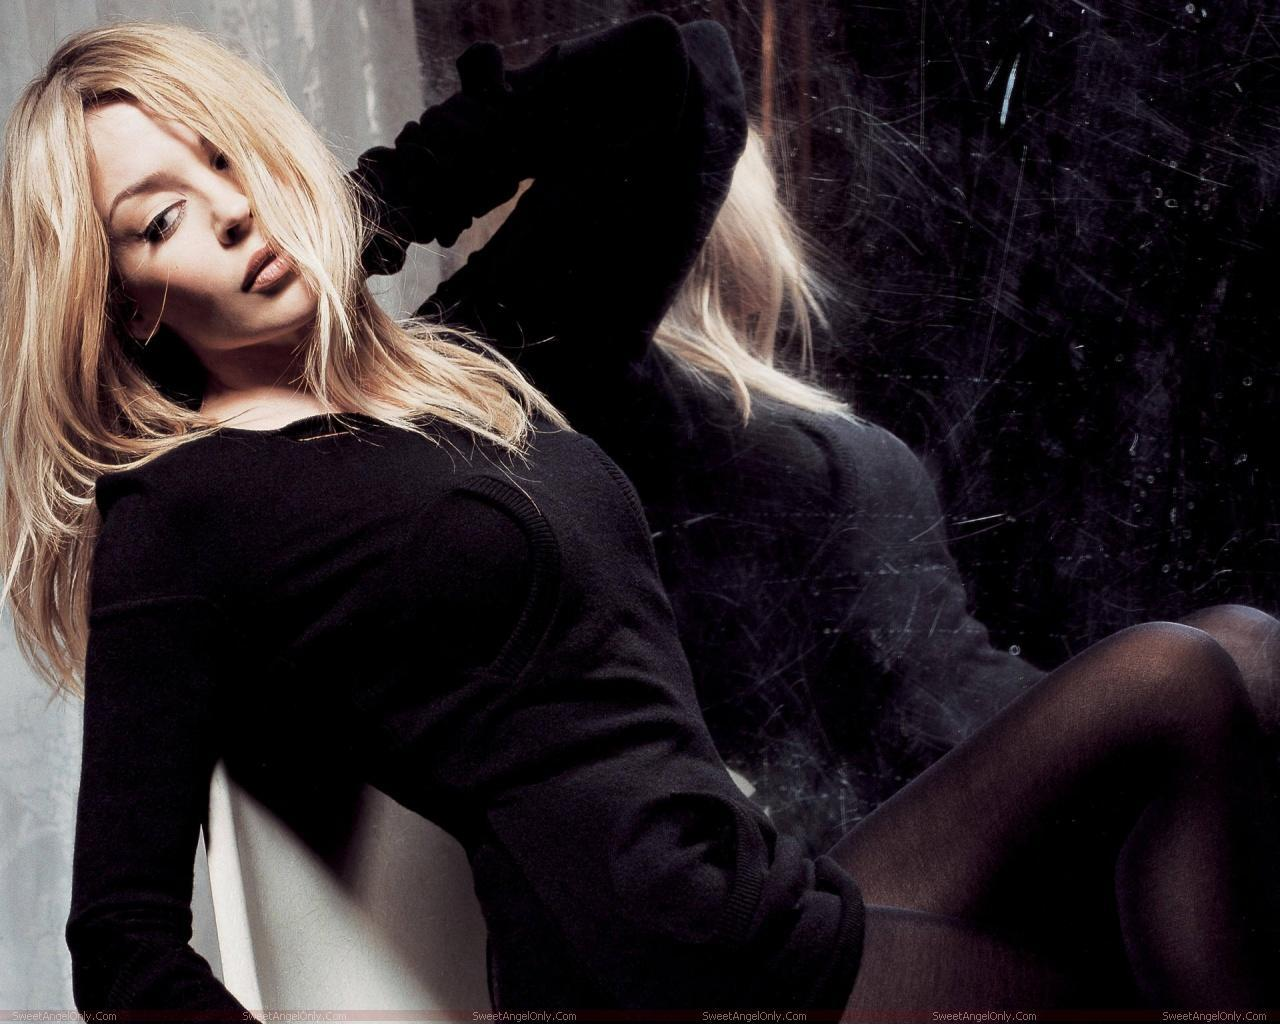 http://4.bp.blogspot.com/-DhJ3RUPcbWY/TX-F8MlWyvI/AAAAAAAAFos/fWZXDmbBRqI/s1600/kylie_minogue_hollywood_hot_actress_wallpaper_sweetangelonly_06.jpg